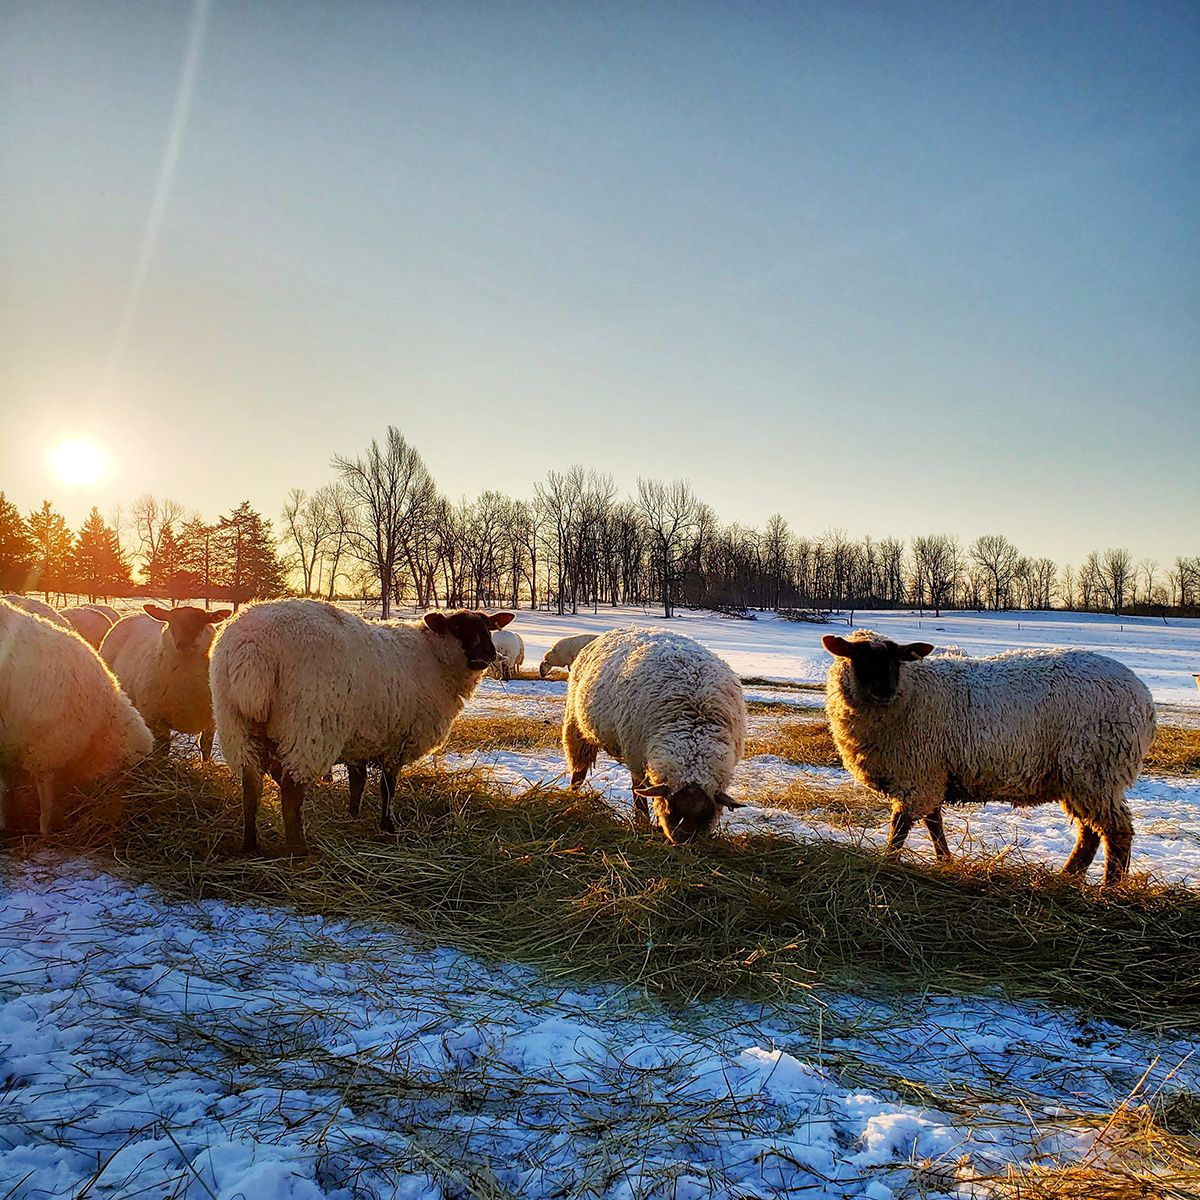 Sheep eating hay on a field in winter